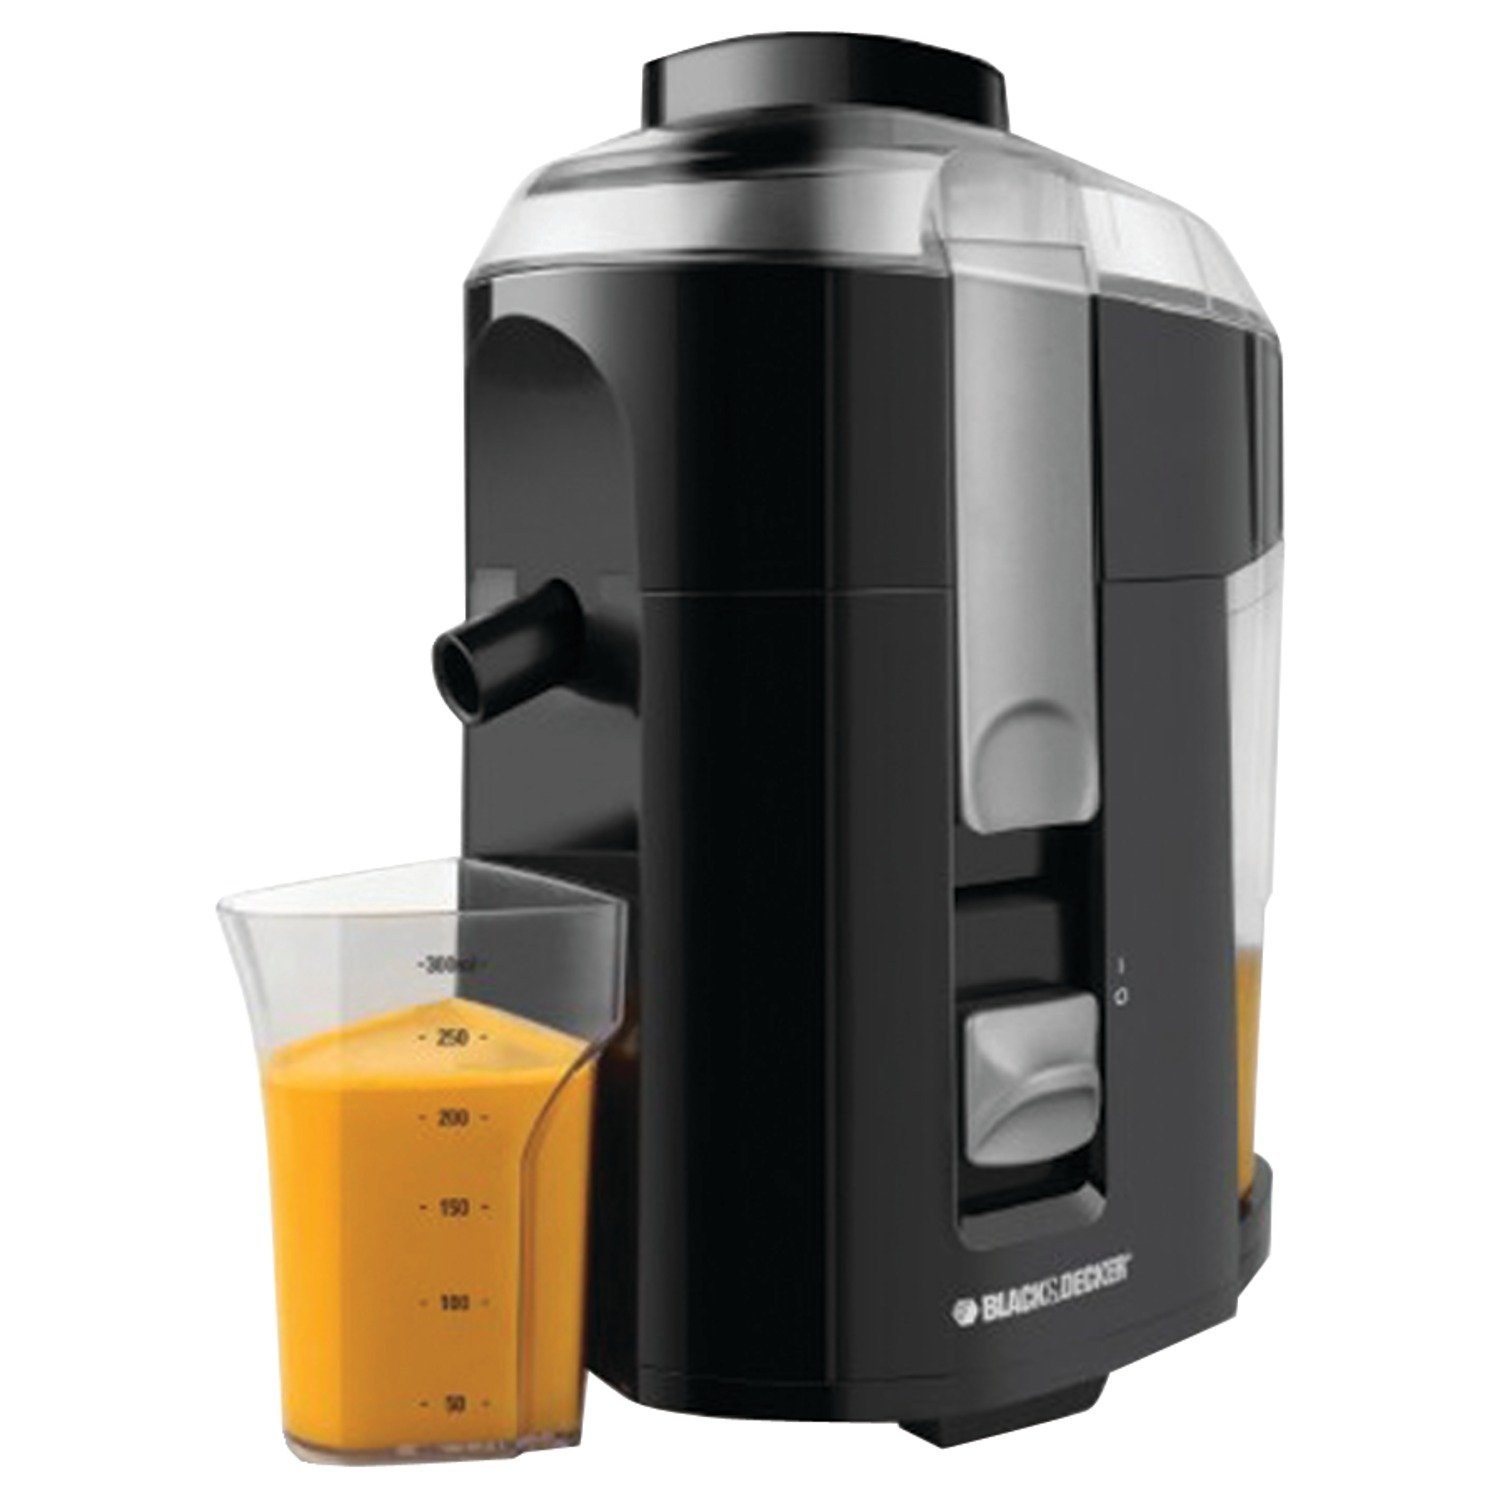 9-blackdecker-je2200b-400-watt-fruit-and-vegetable-juice-extractor